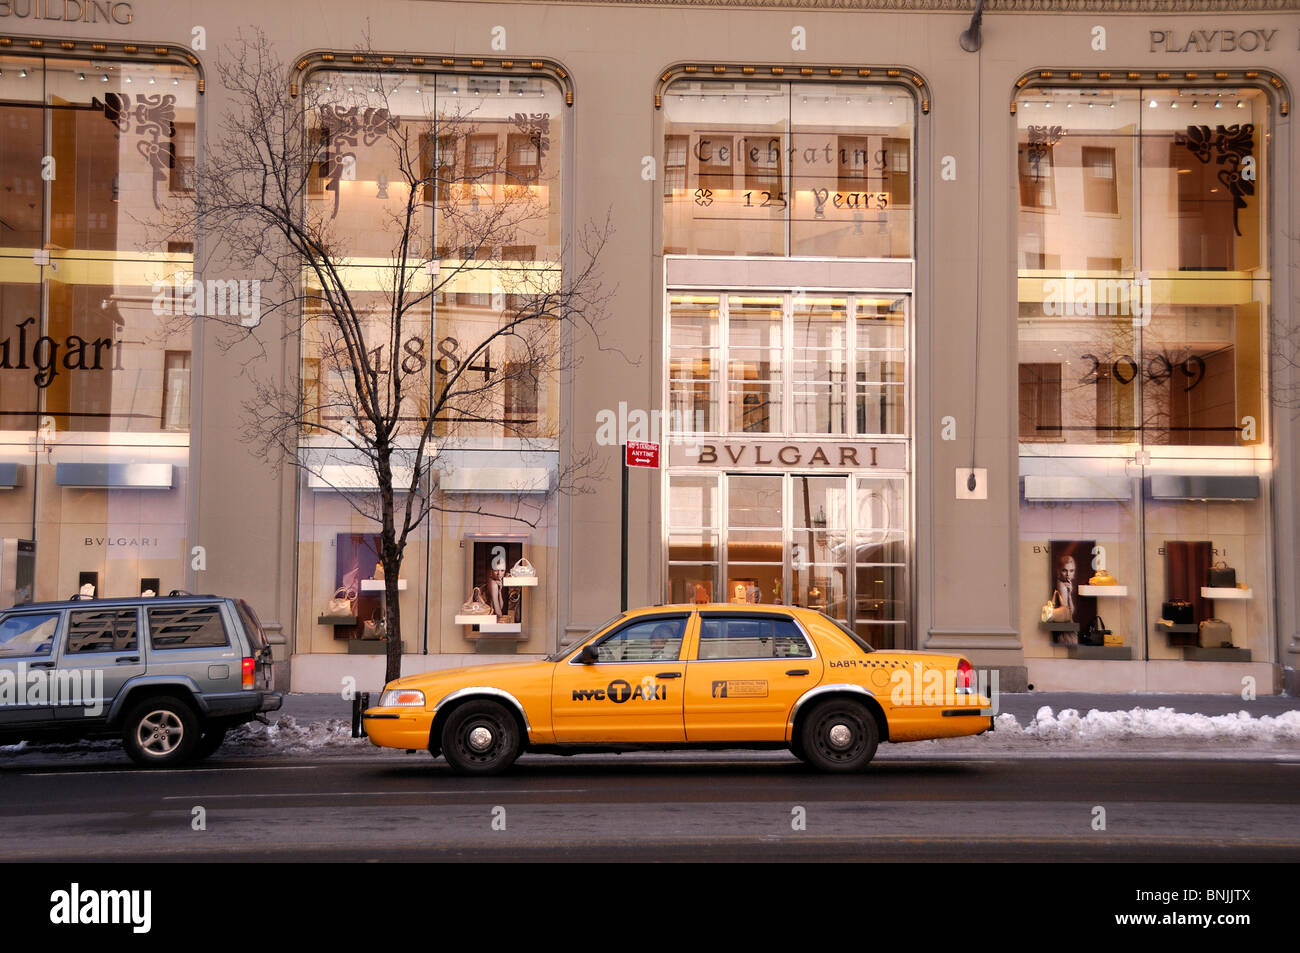 BVLGARI Bulgari 57th Street 5th Avenue Midtown Manhattan New York USA taxi. Yellow shopping city travel american - Stock Image